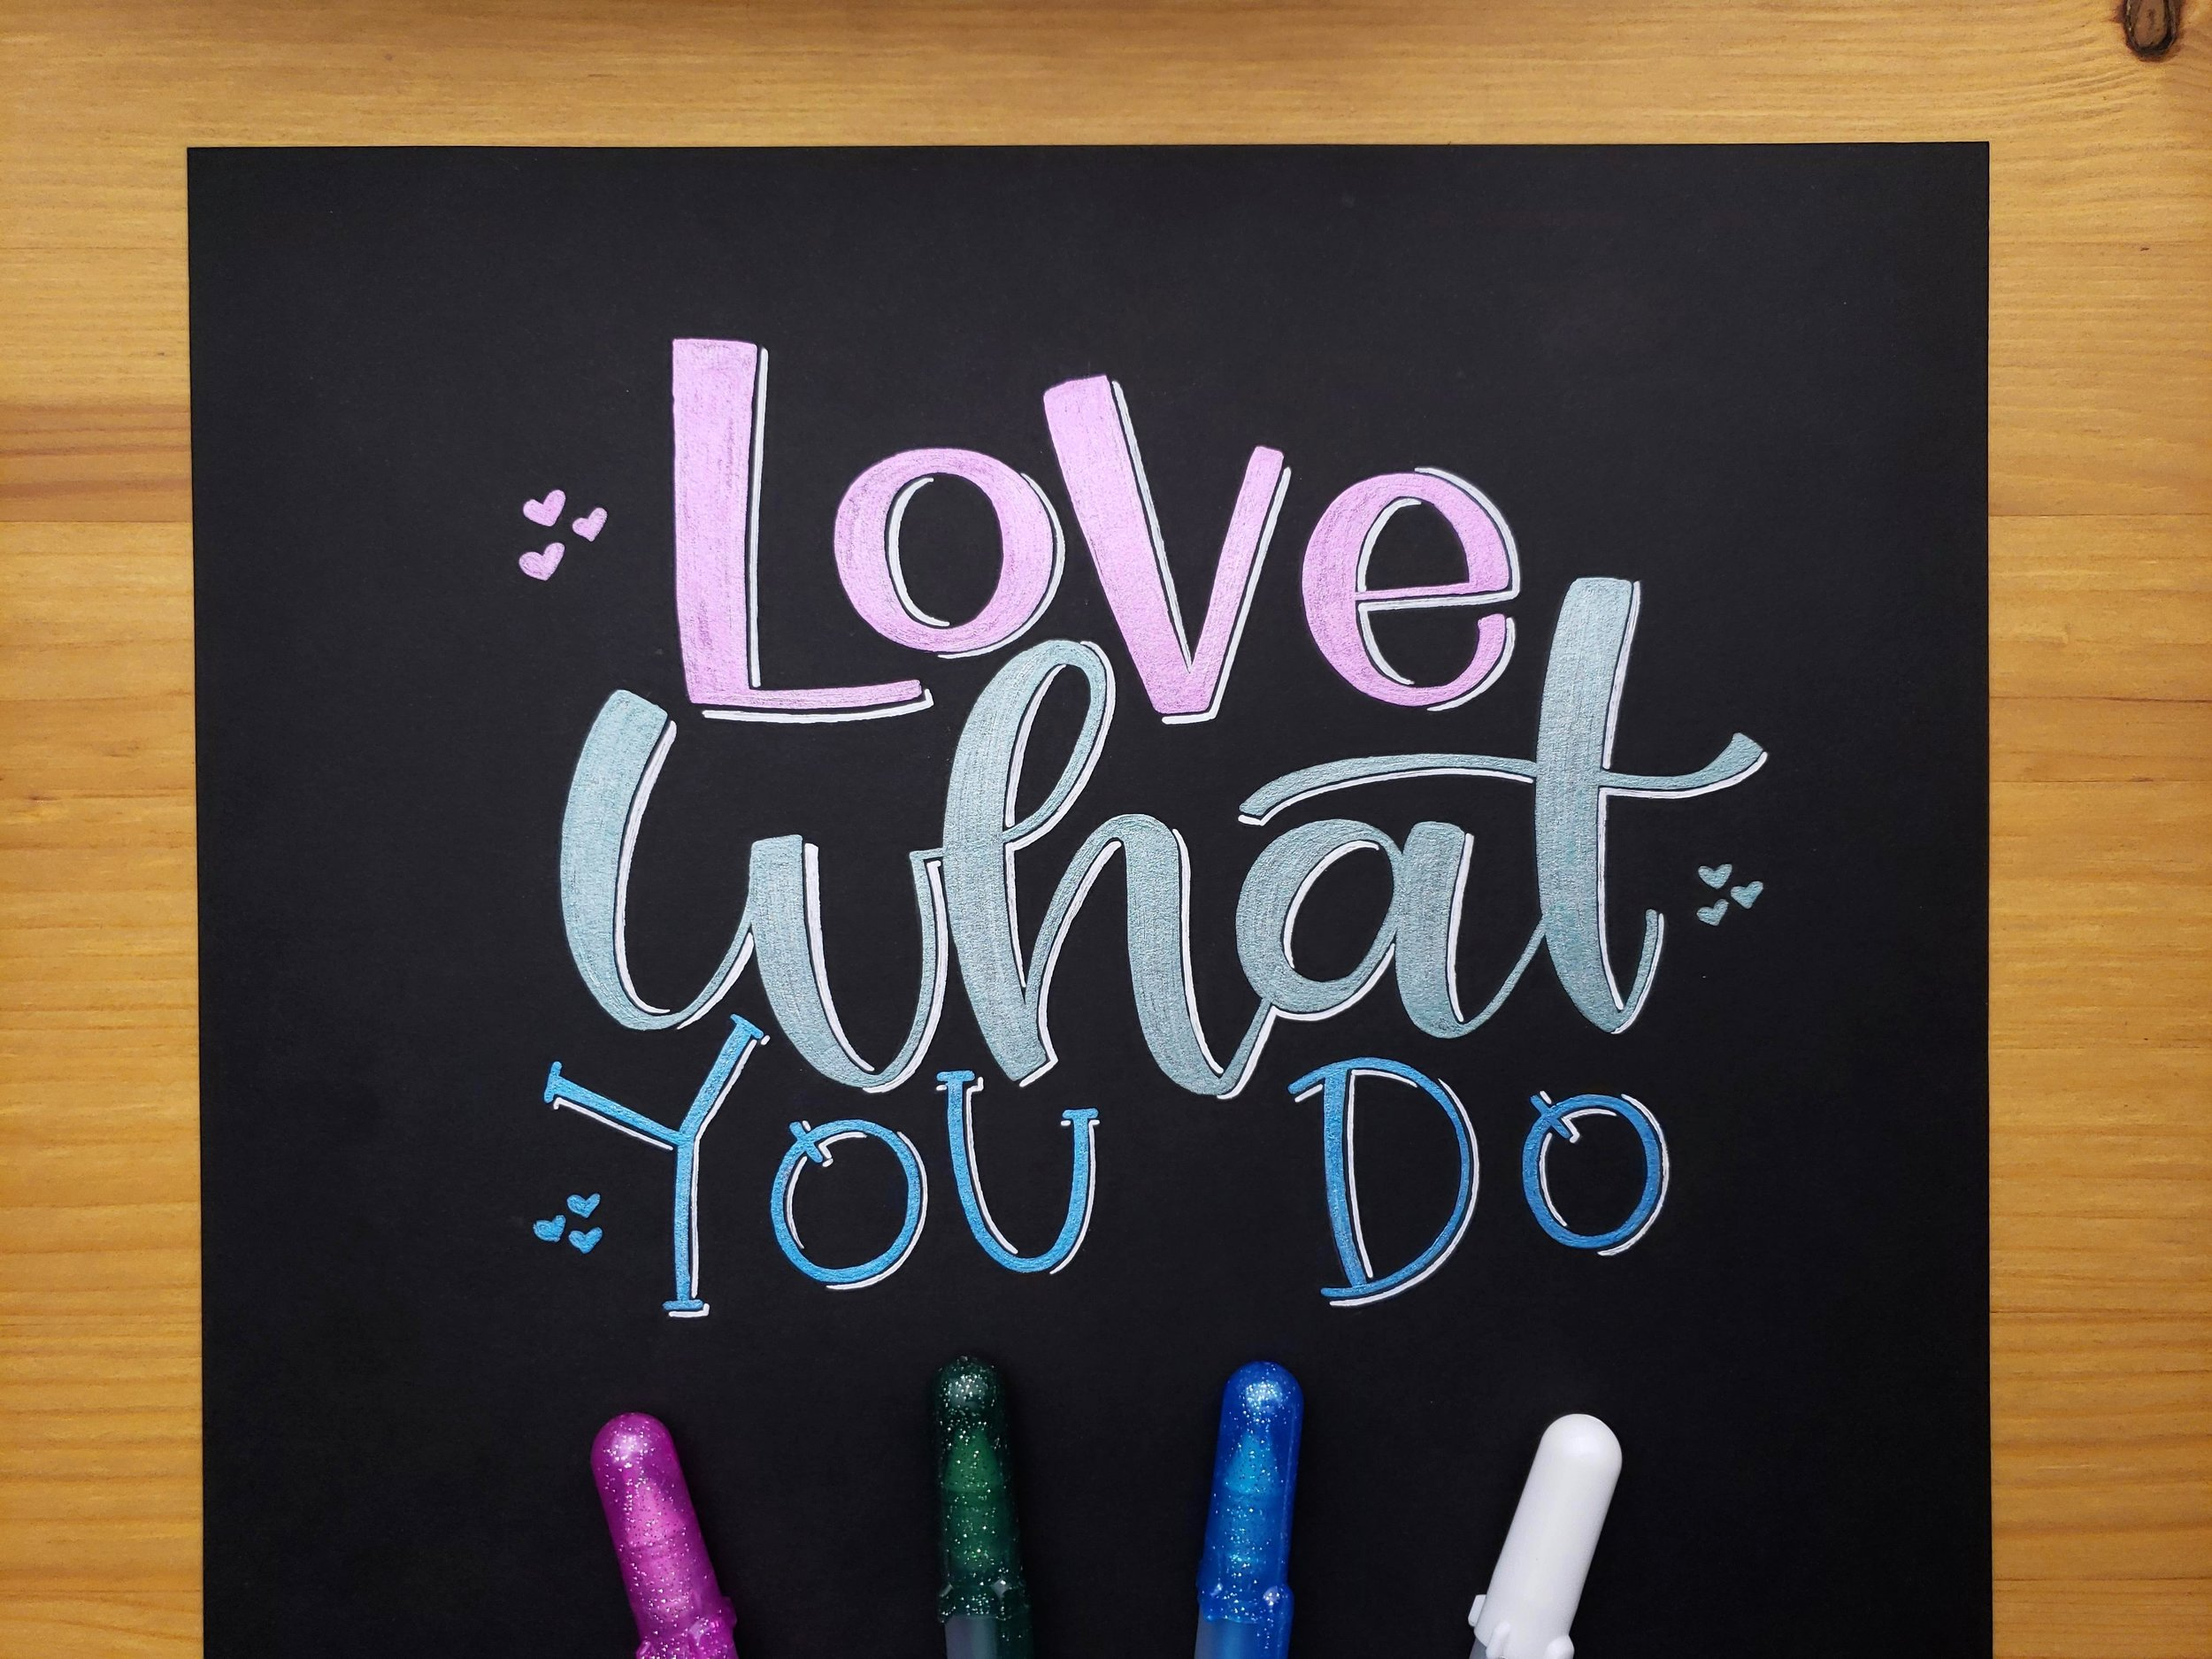 love-what-you-do-letters-by-gigi-hand-lettering-los-angeles-artist-custom-typography-modern-calligraphy-instagram-art